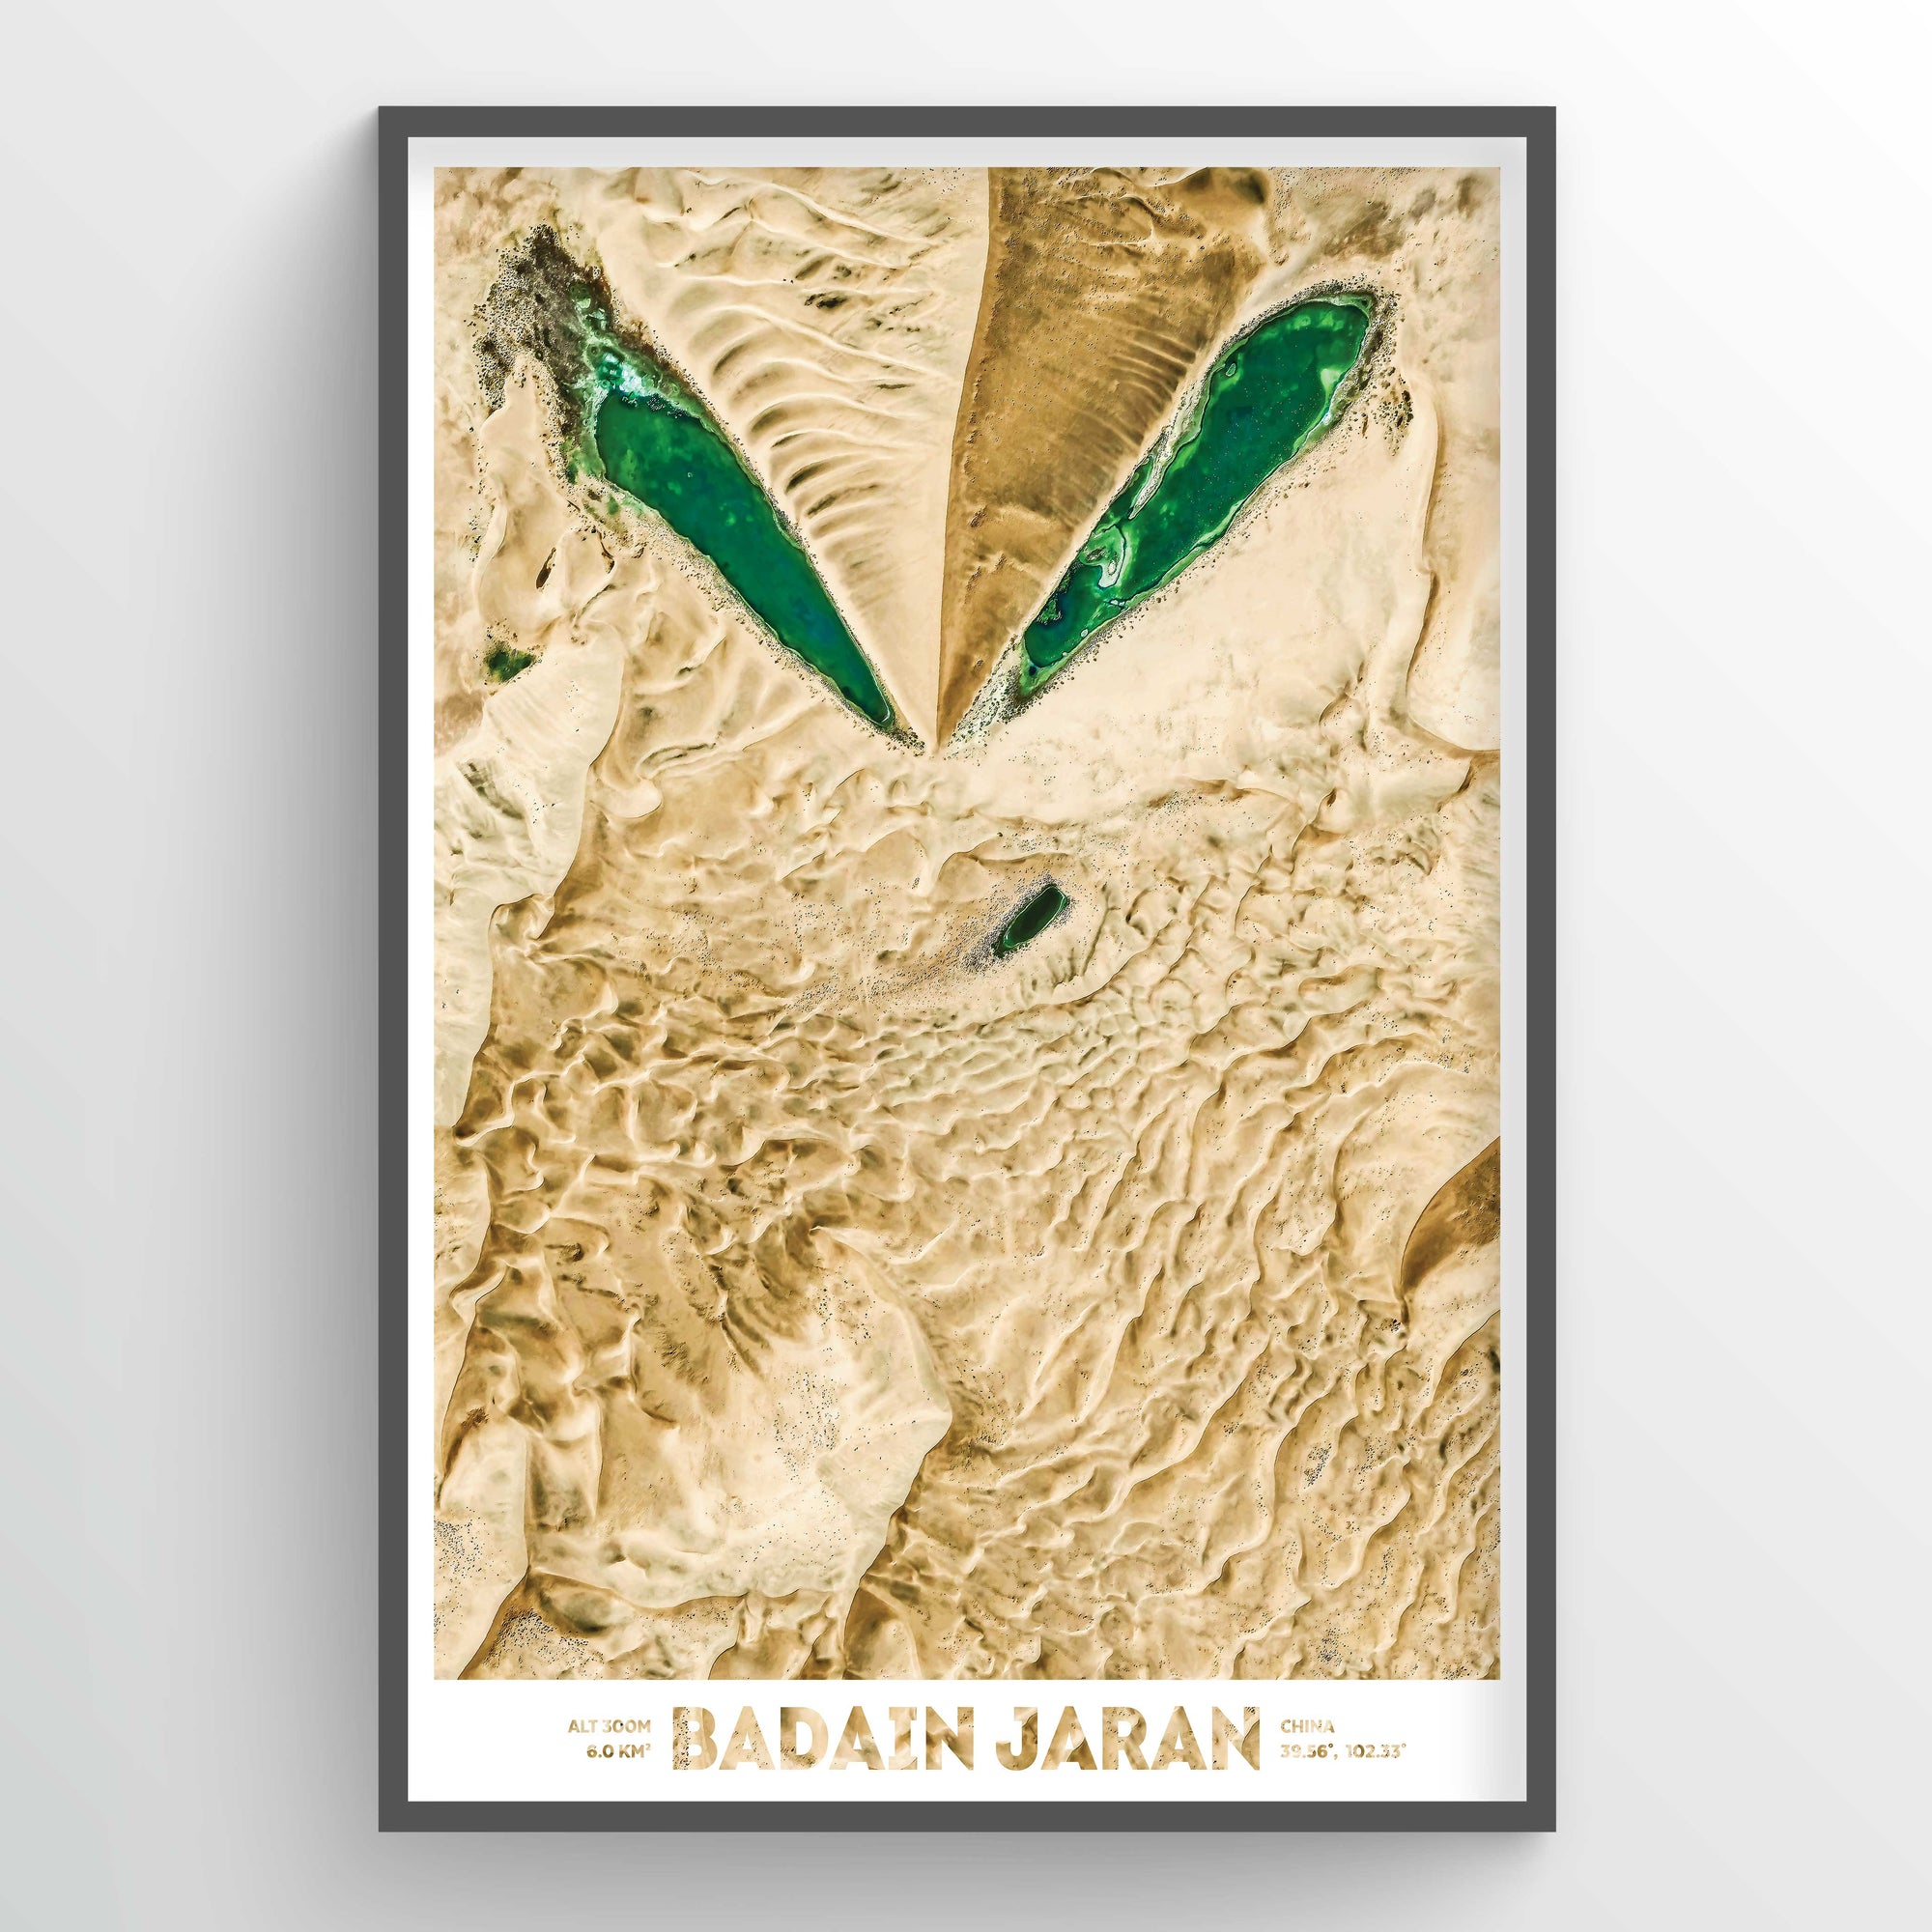 Badain Jaran Earth Photography - Art Print - Point Two Design